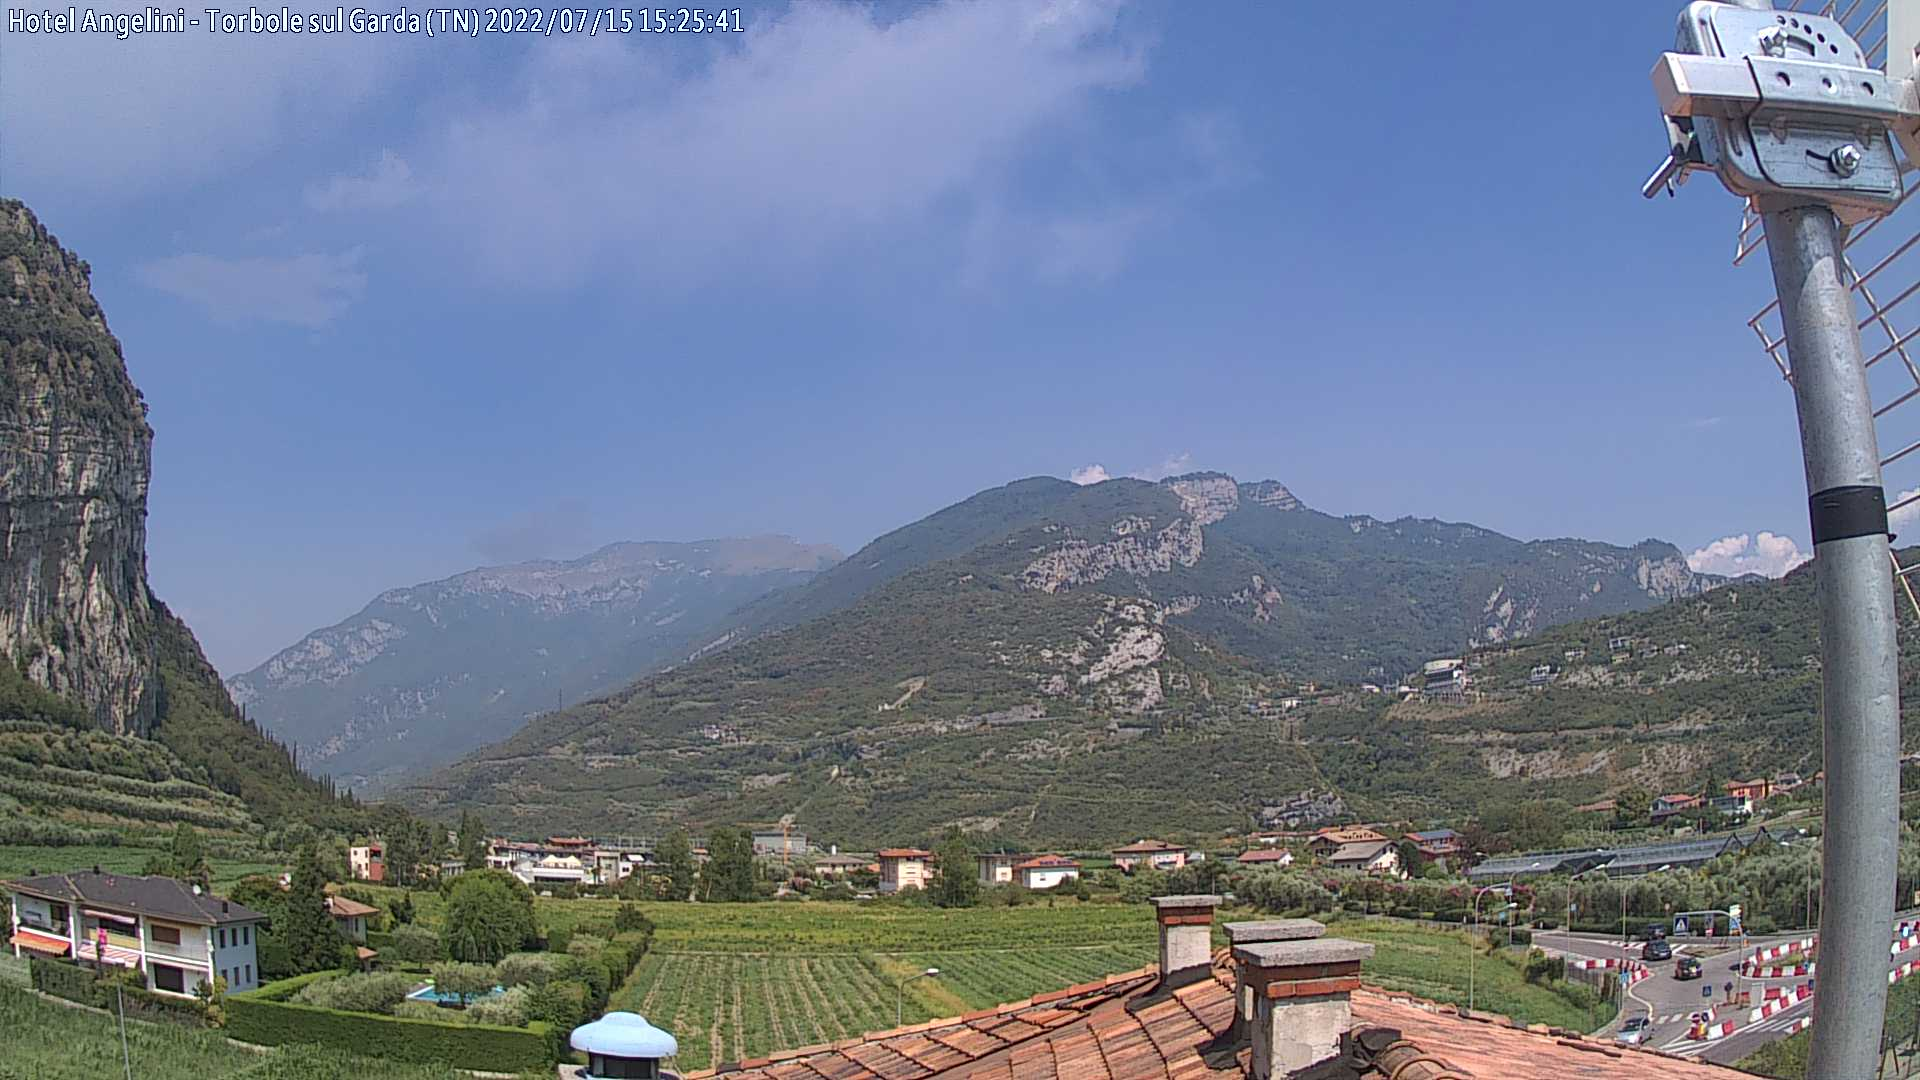 Webcam Mountains View Hotel Angelini *** Torbole sul Garda